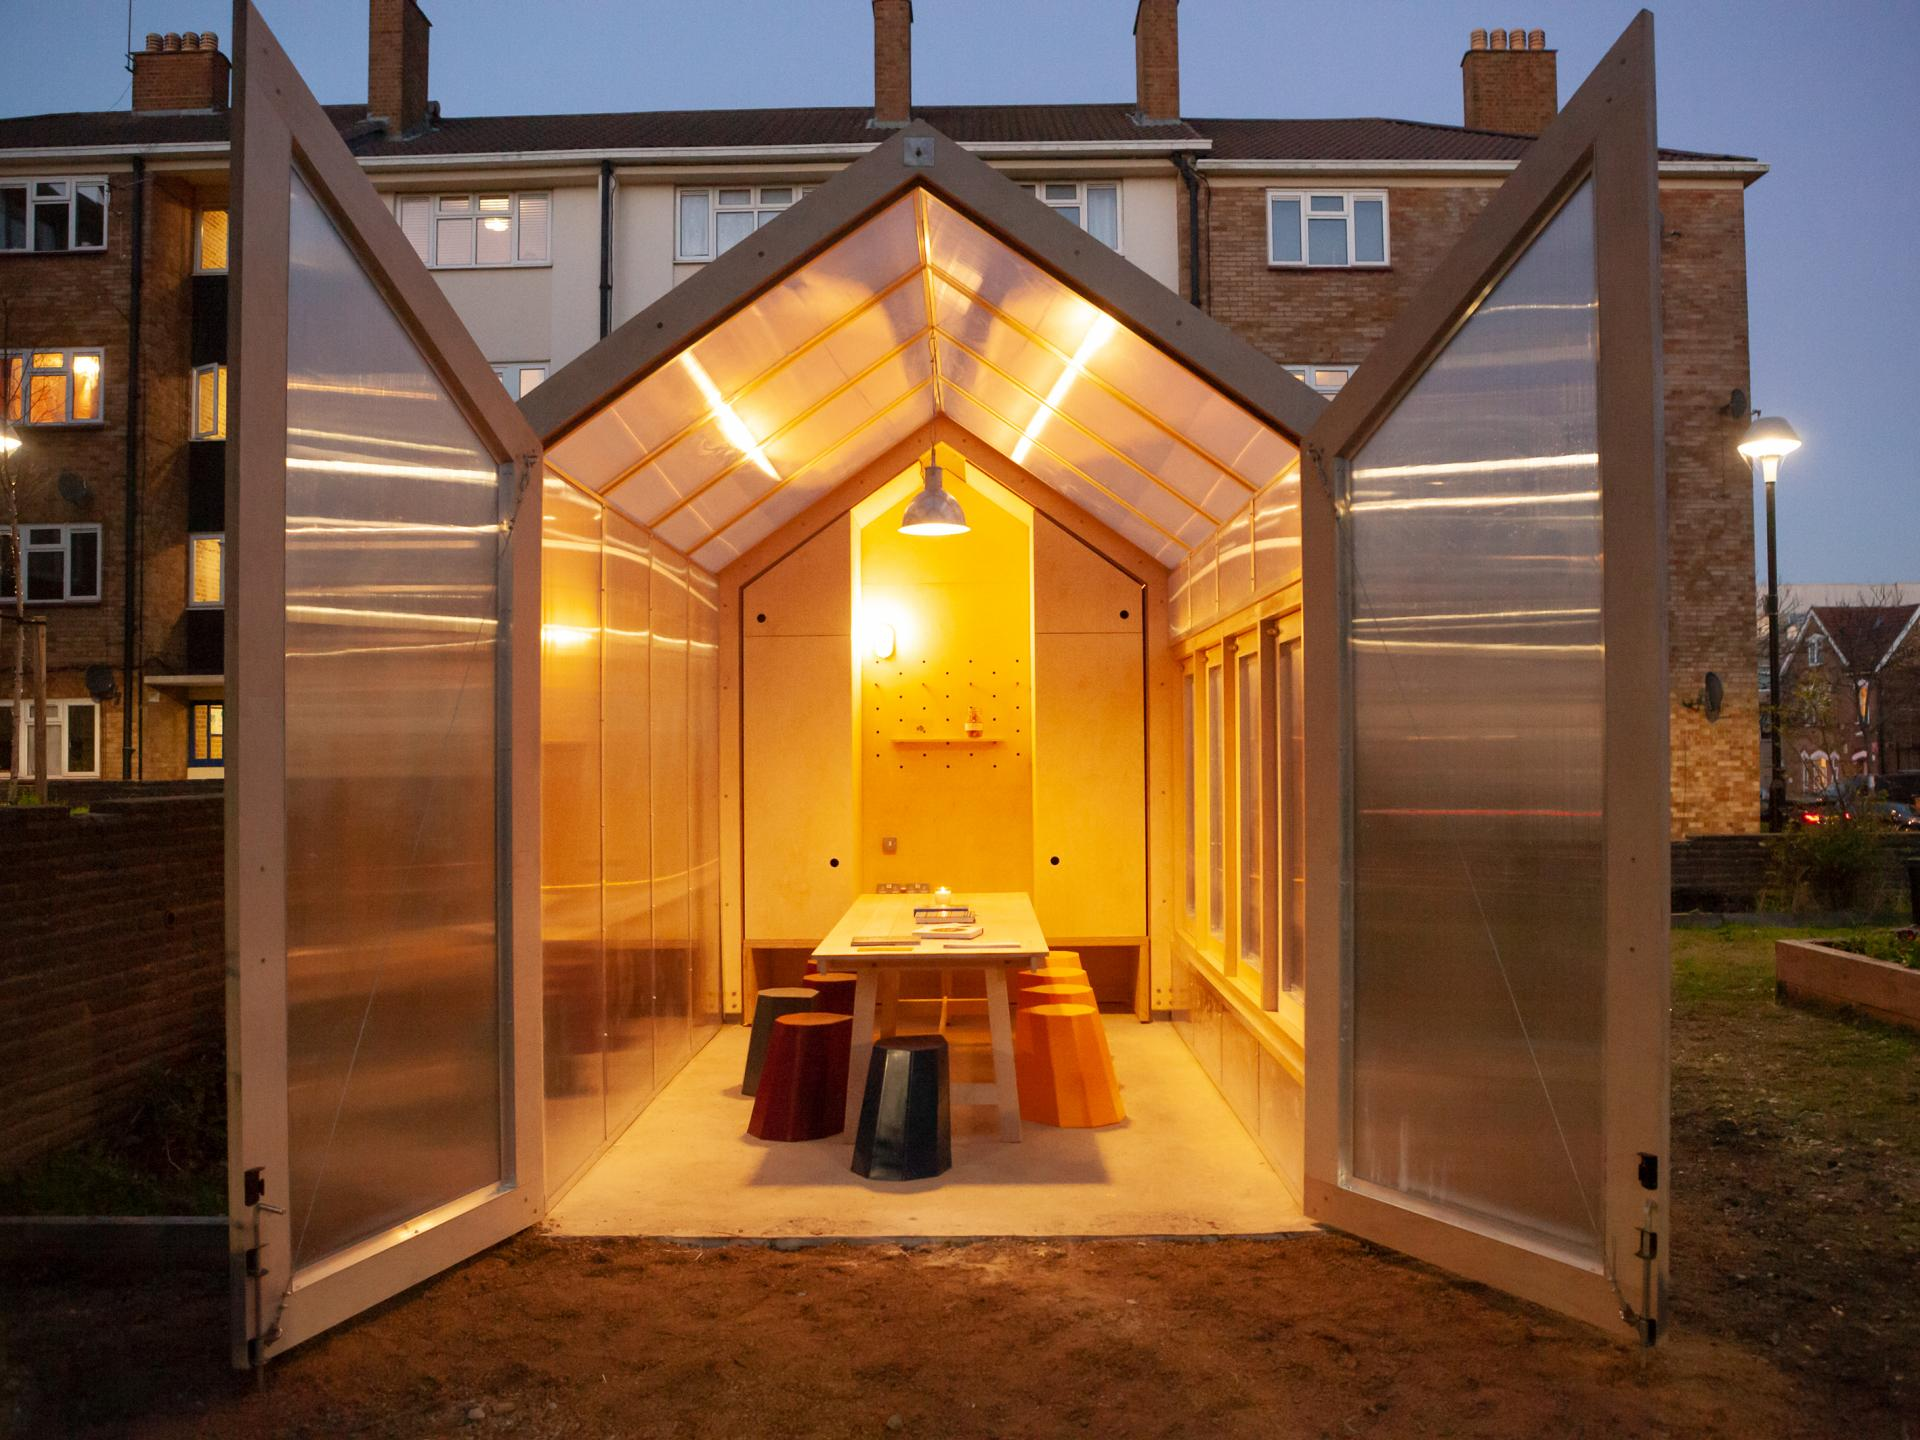 TriO by the drwaing shed. Designed and made by Risner Design in collaboration with Matthew Lloyd Architects